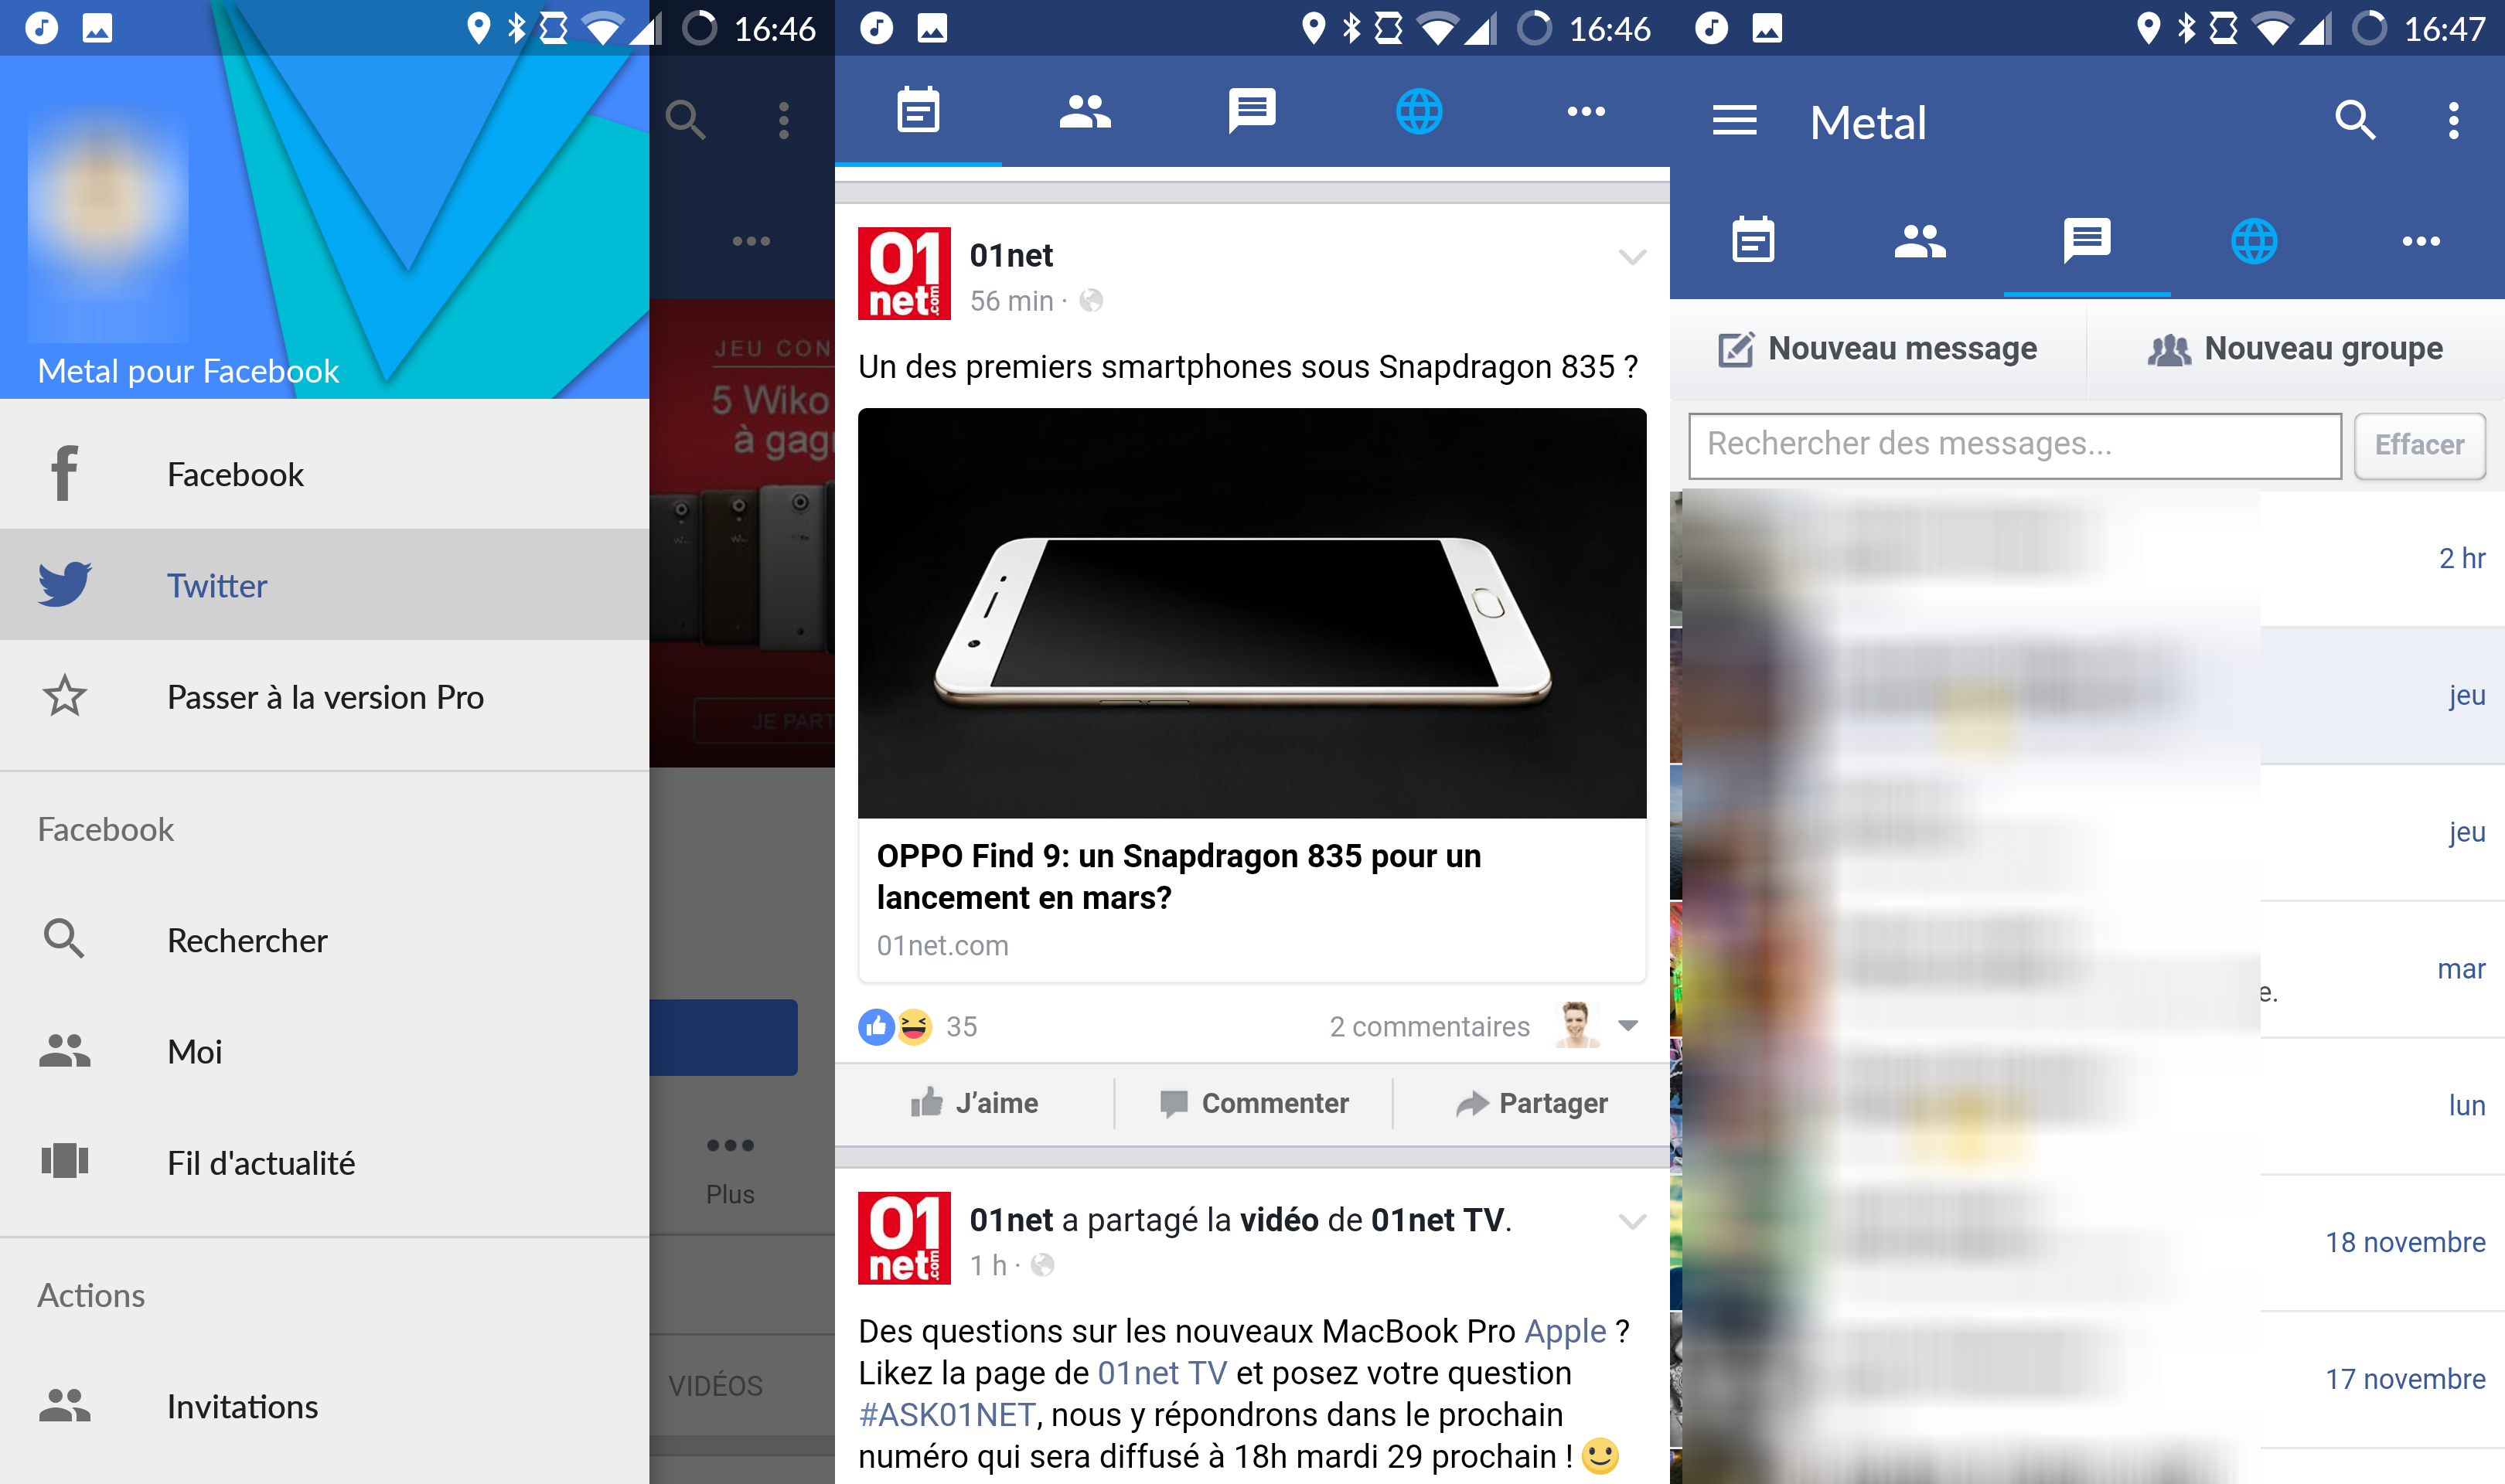 logiciel appel video facebook gratuit 01net